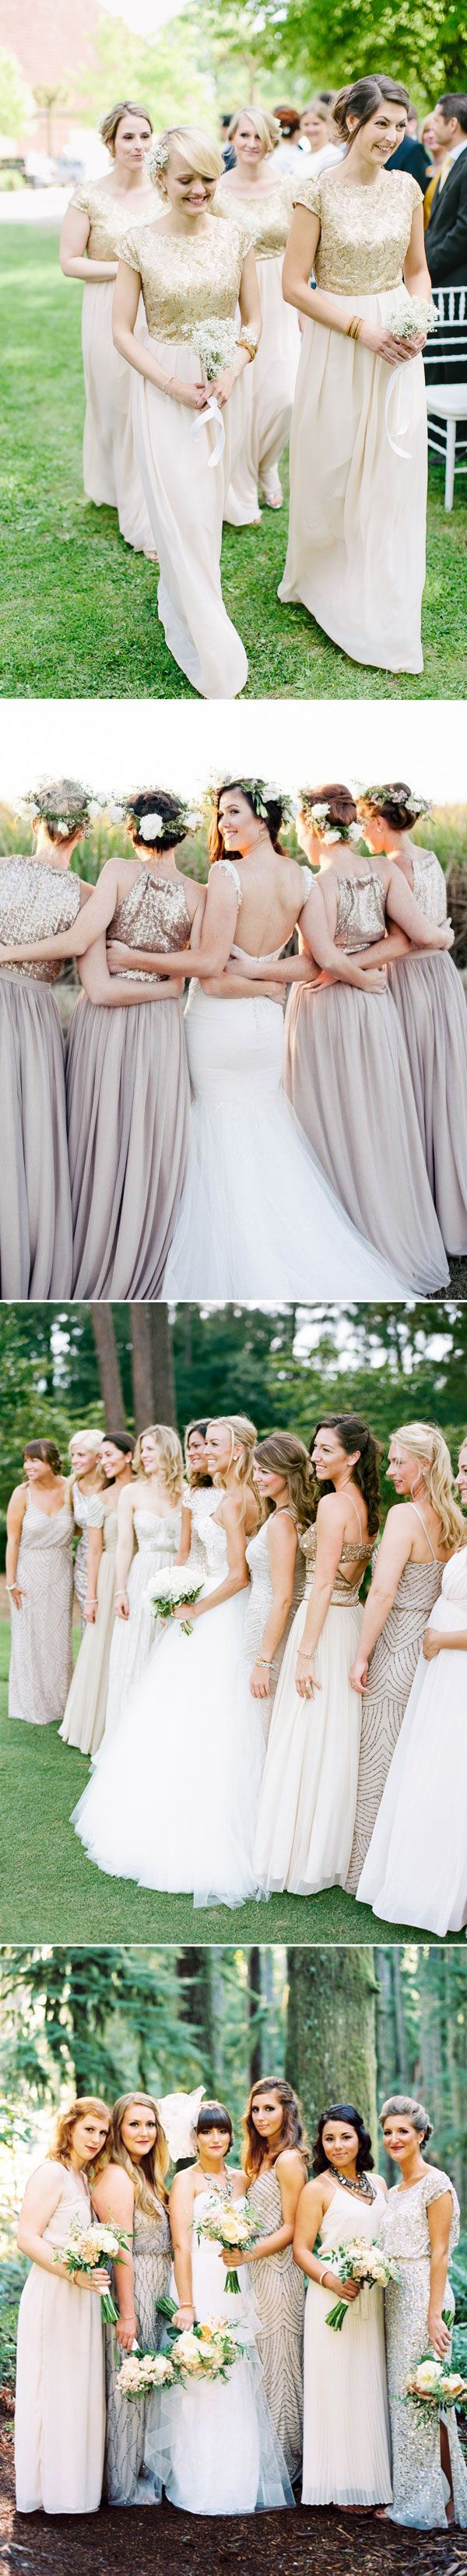 metallic real wedding long bridesmaid dresses for fall 2015